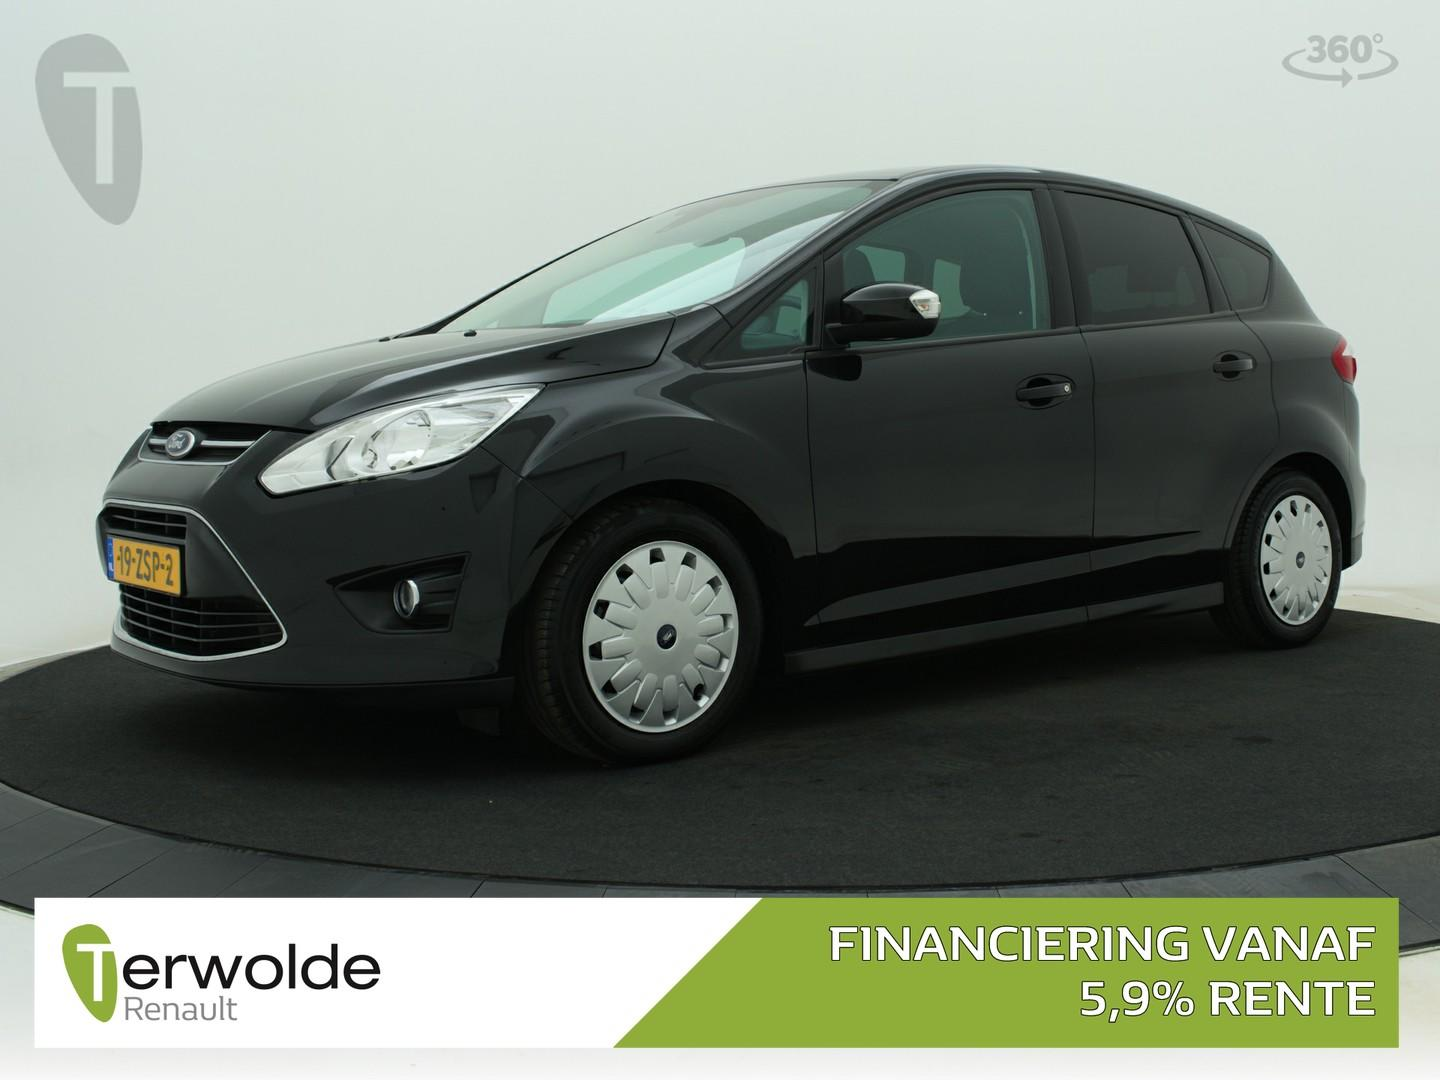 Ford C-max 1.0 trend 126pk trekhaak i airco i cuise control i navigatie